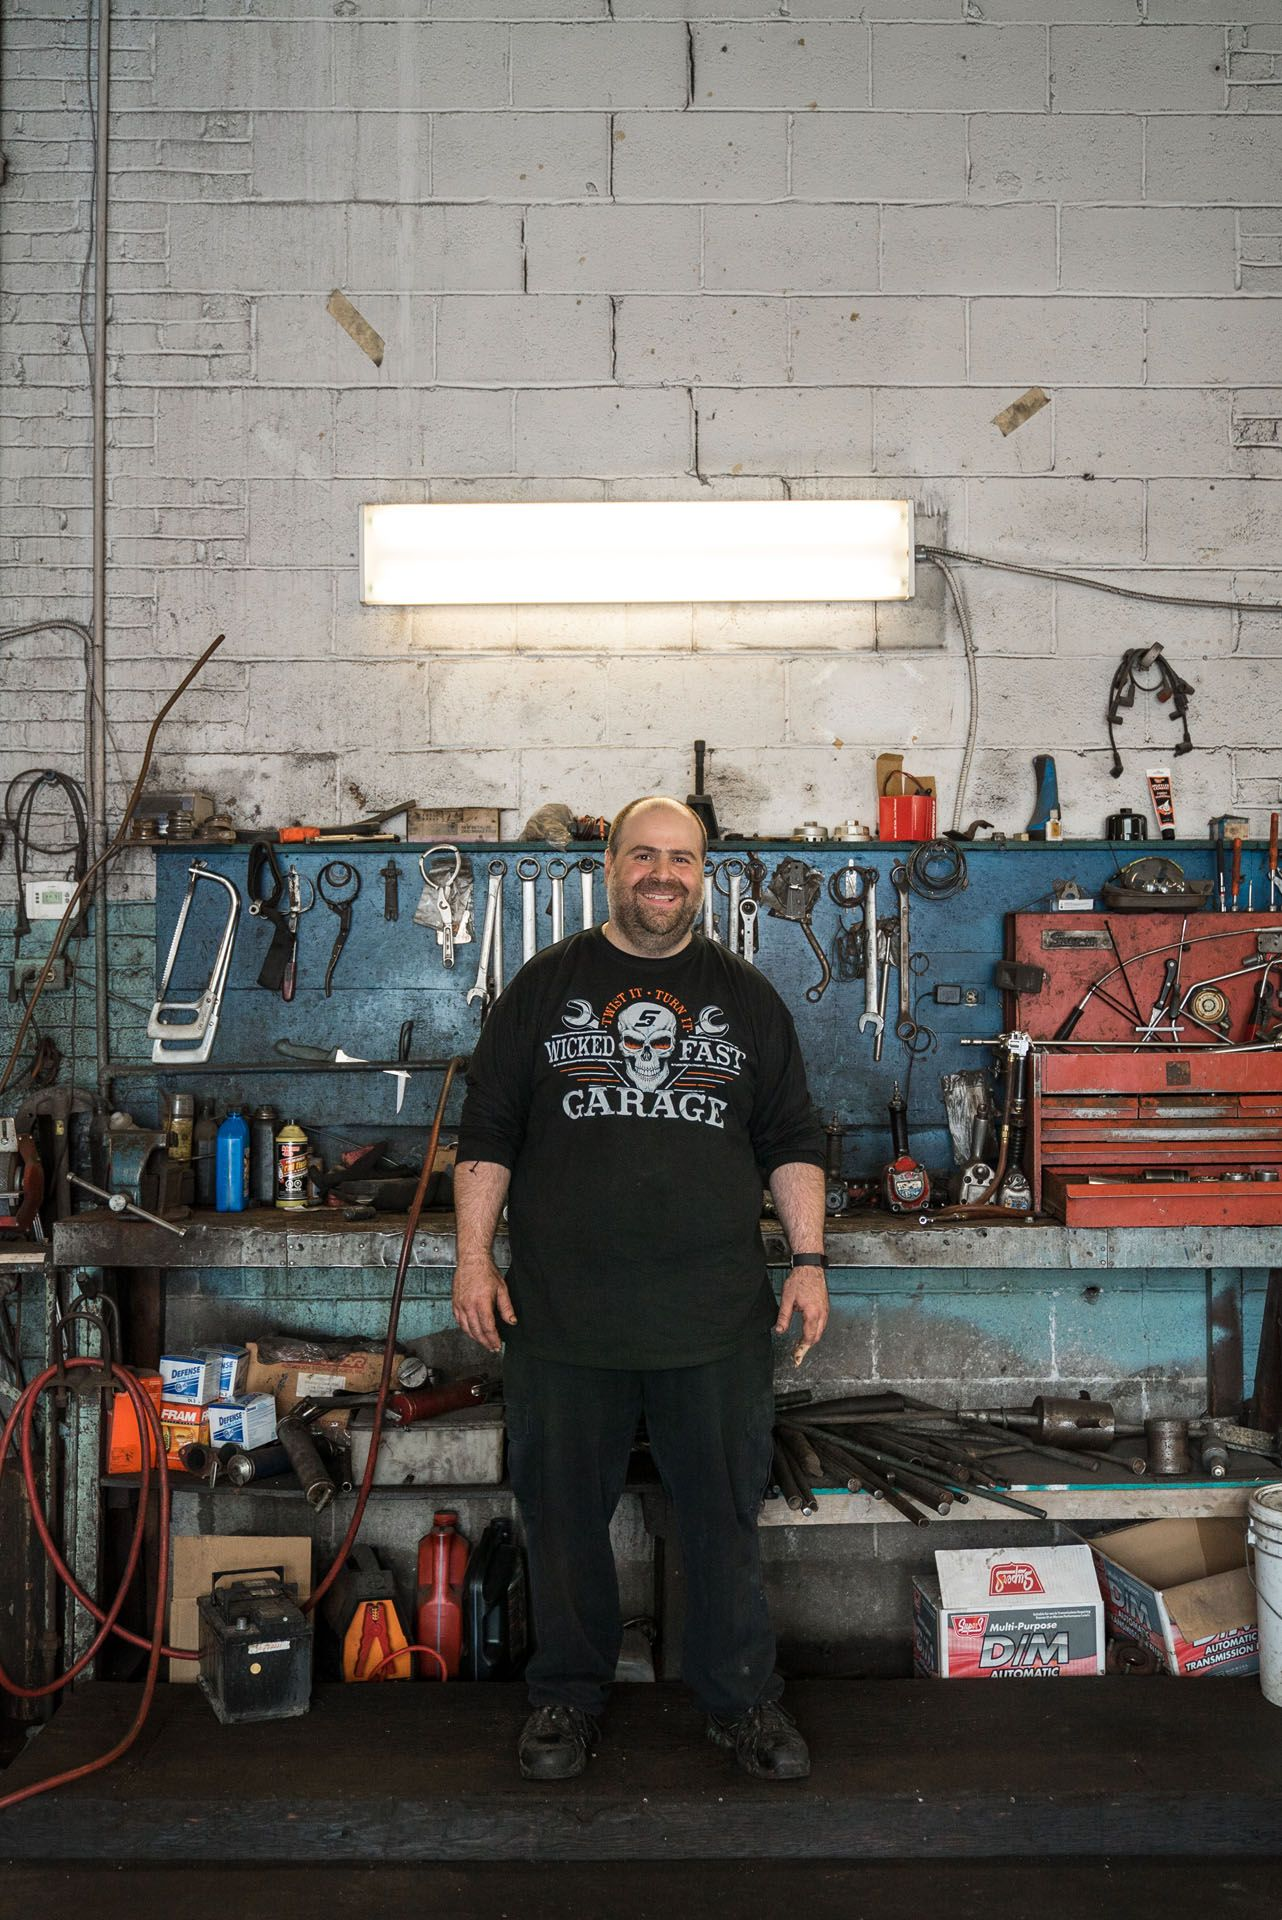 bald garage owner smiling posing in front of his work table with tools by Bruno Florin for Mile-Ex Milles vie